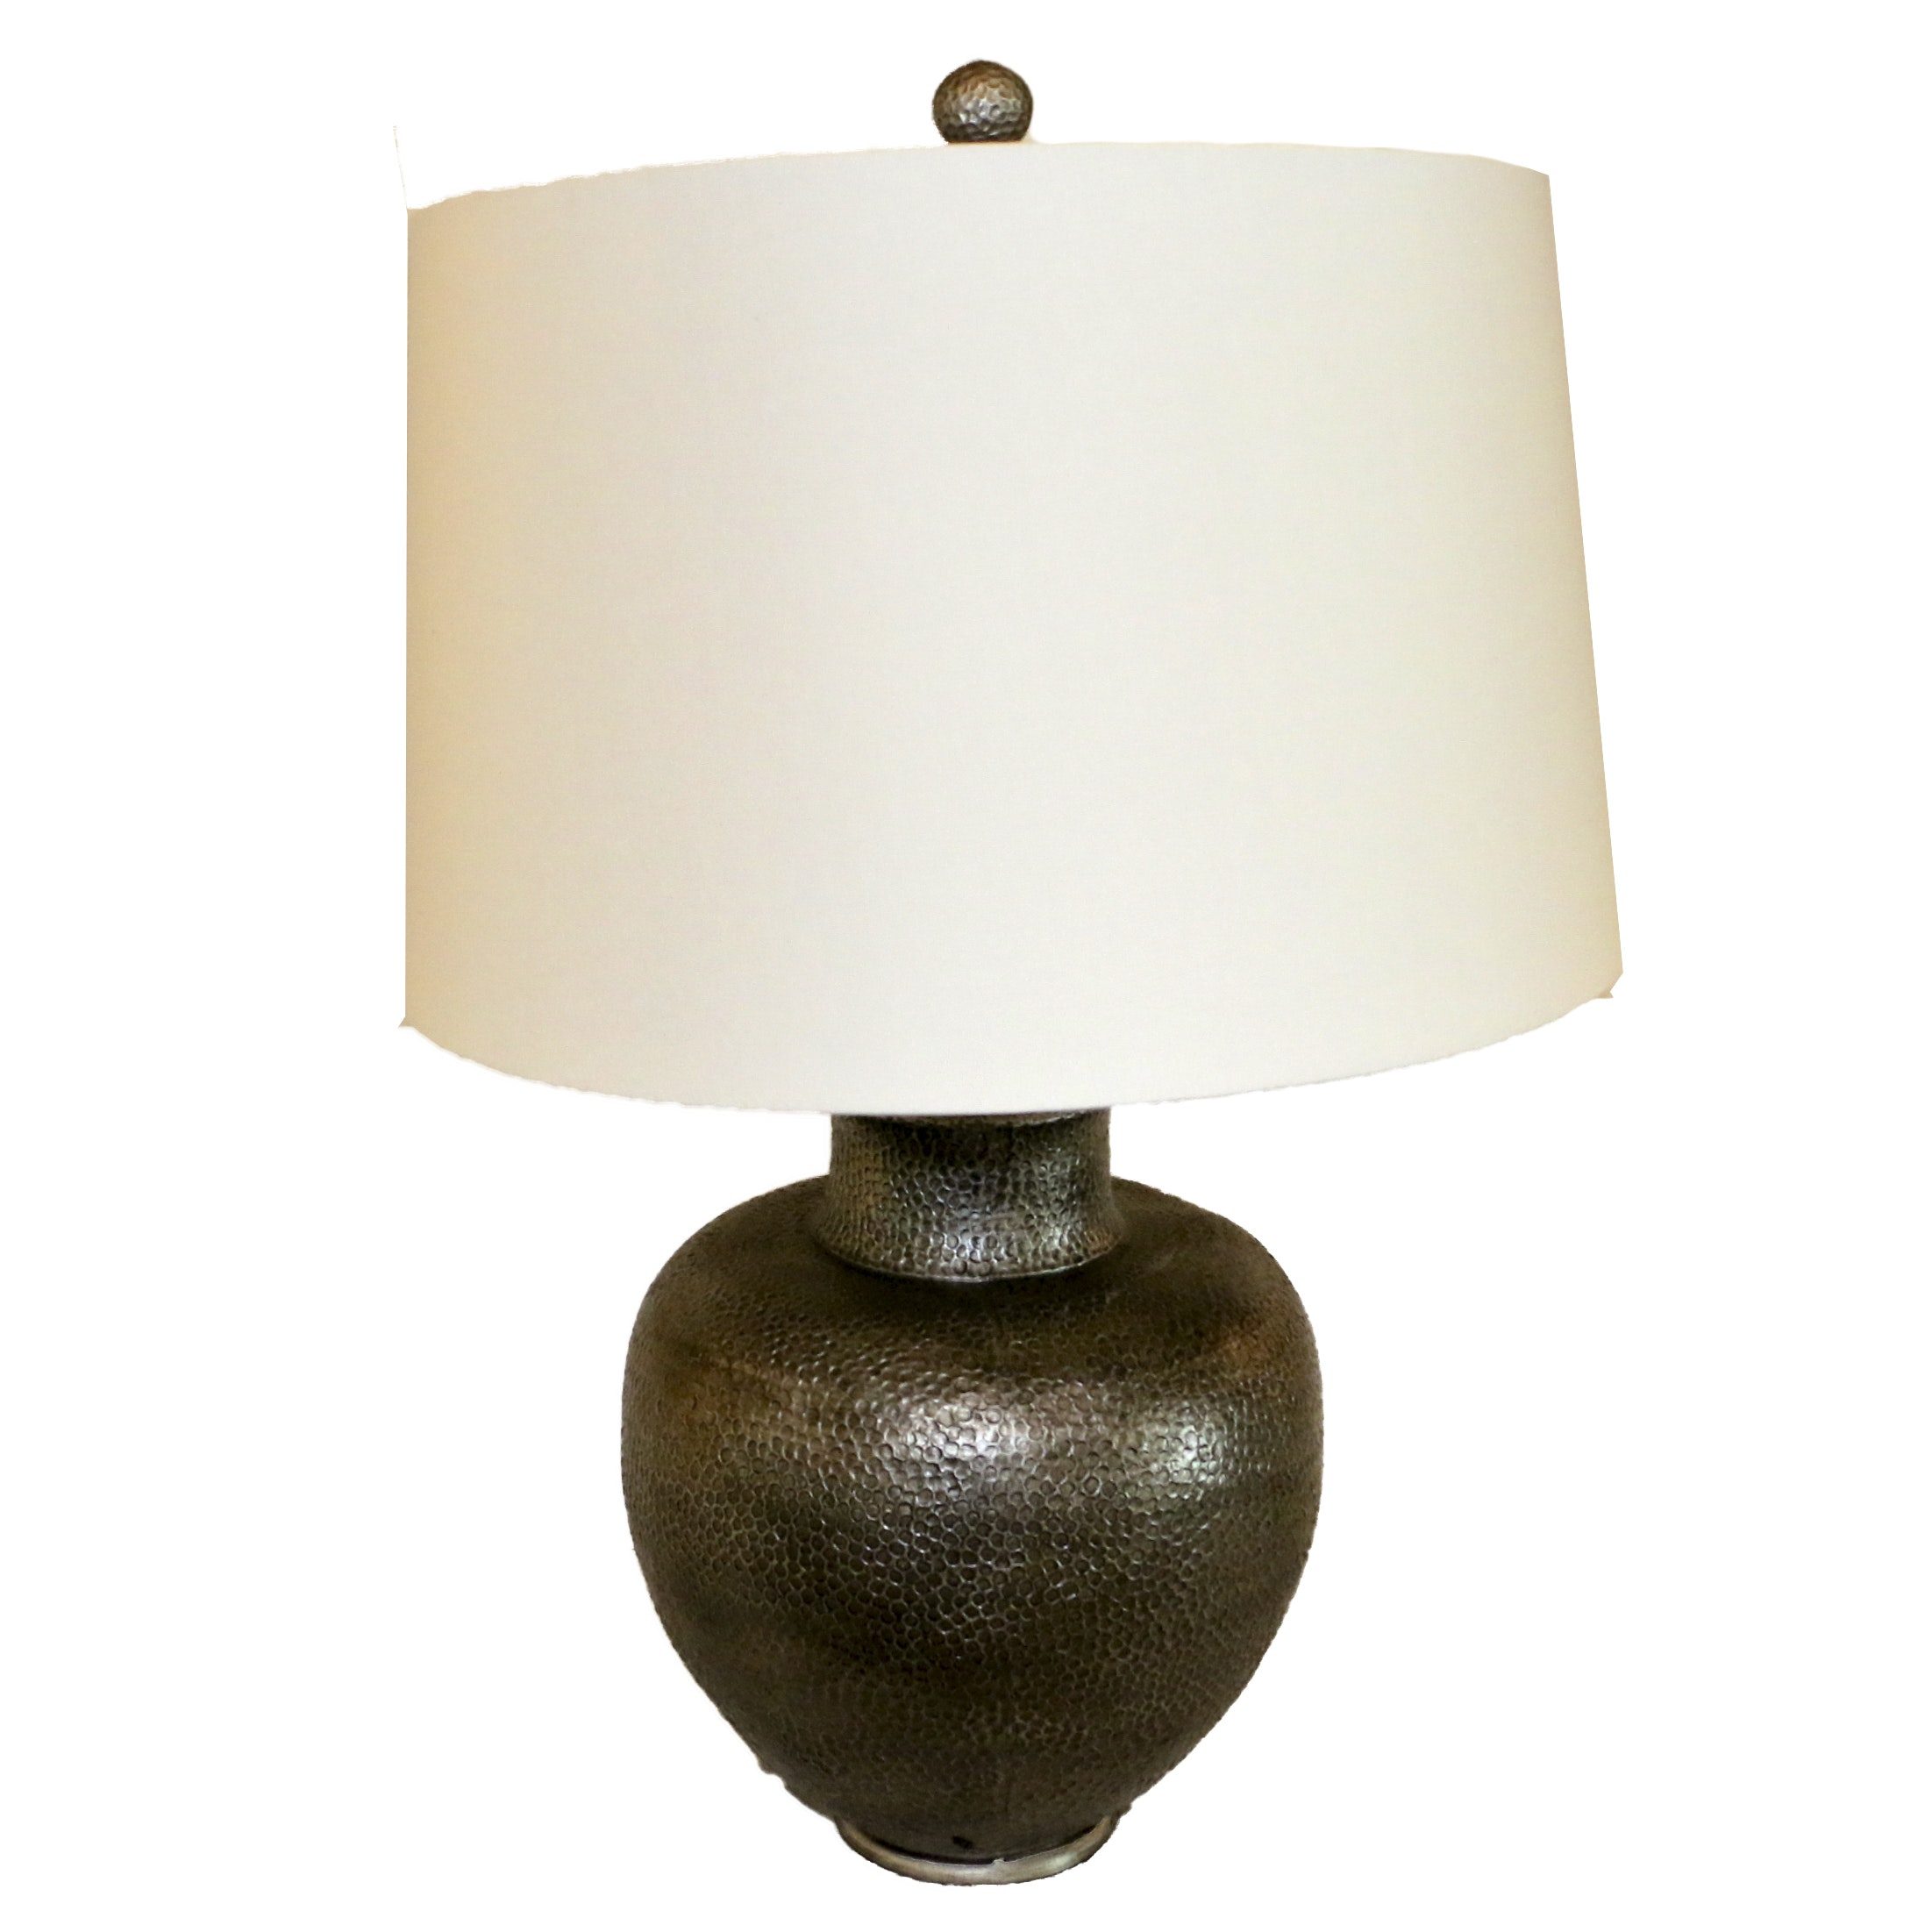 Ceramic Table Lamp with Barrel Shade